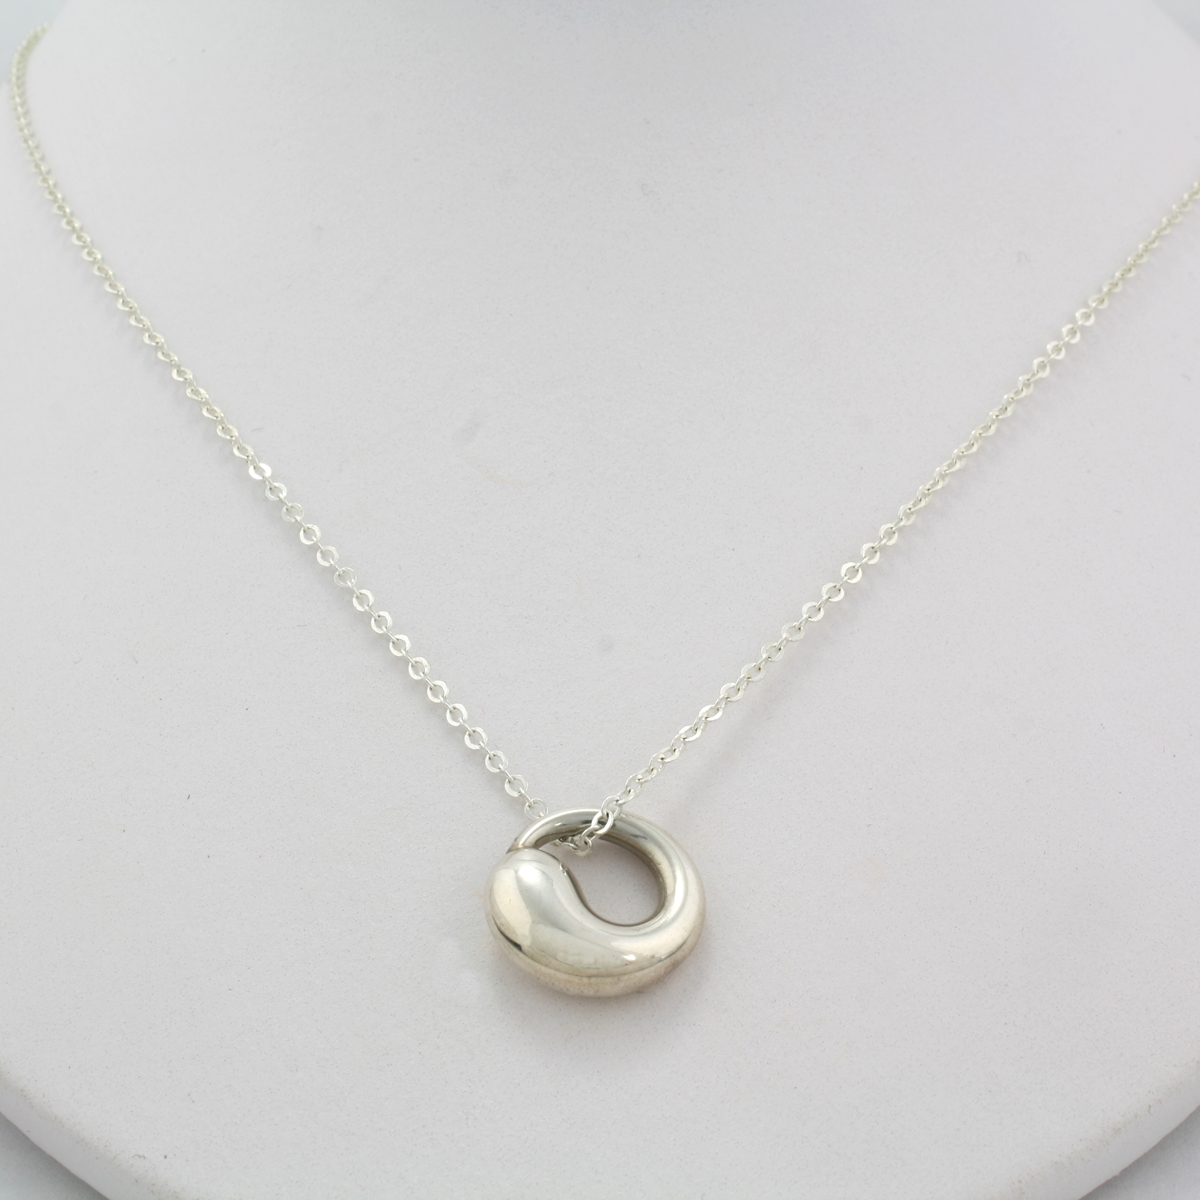 Tiffany co eternal circle pendant with chain mozeypictures